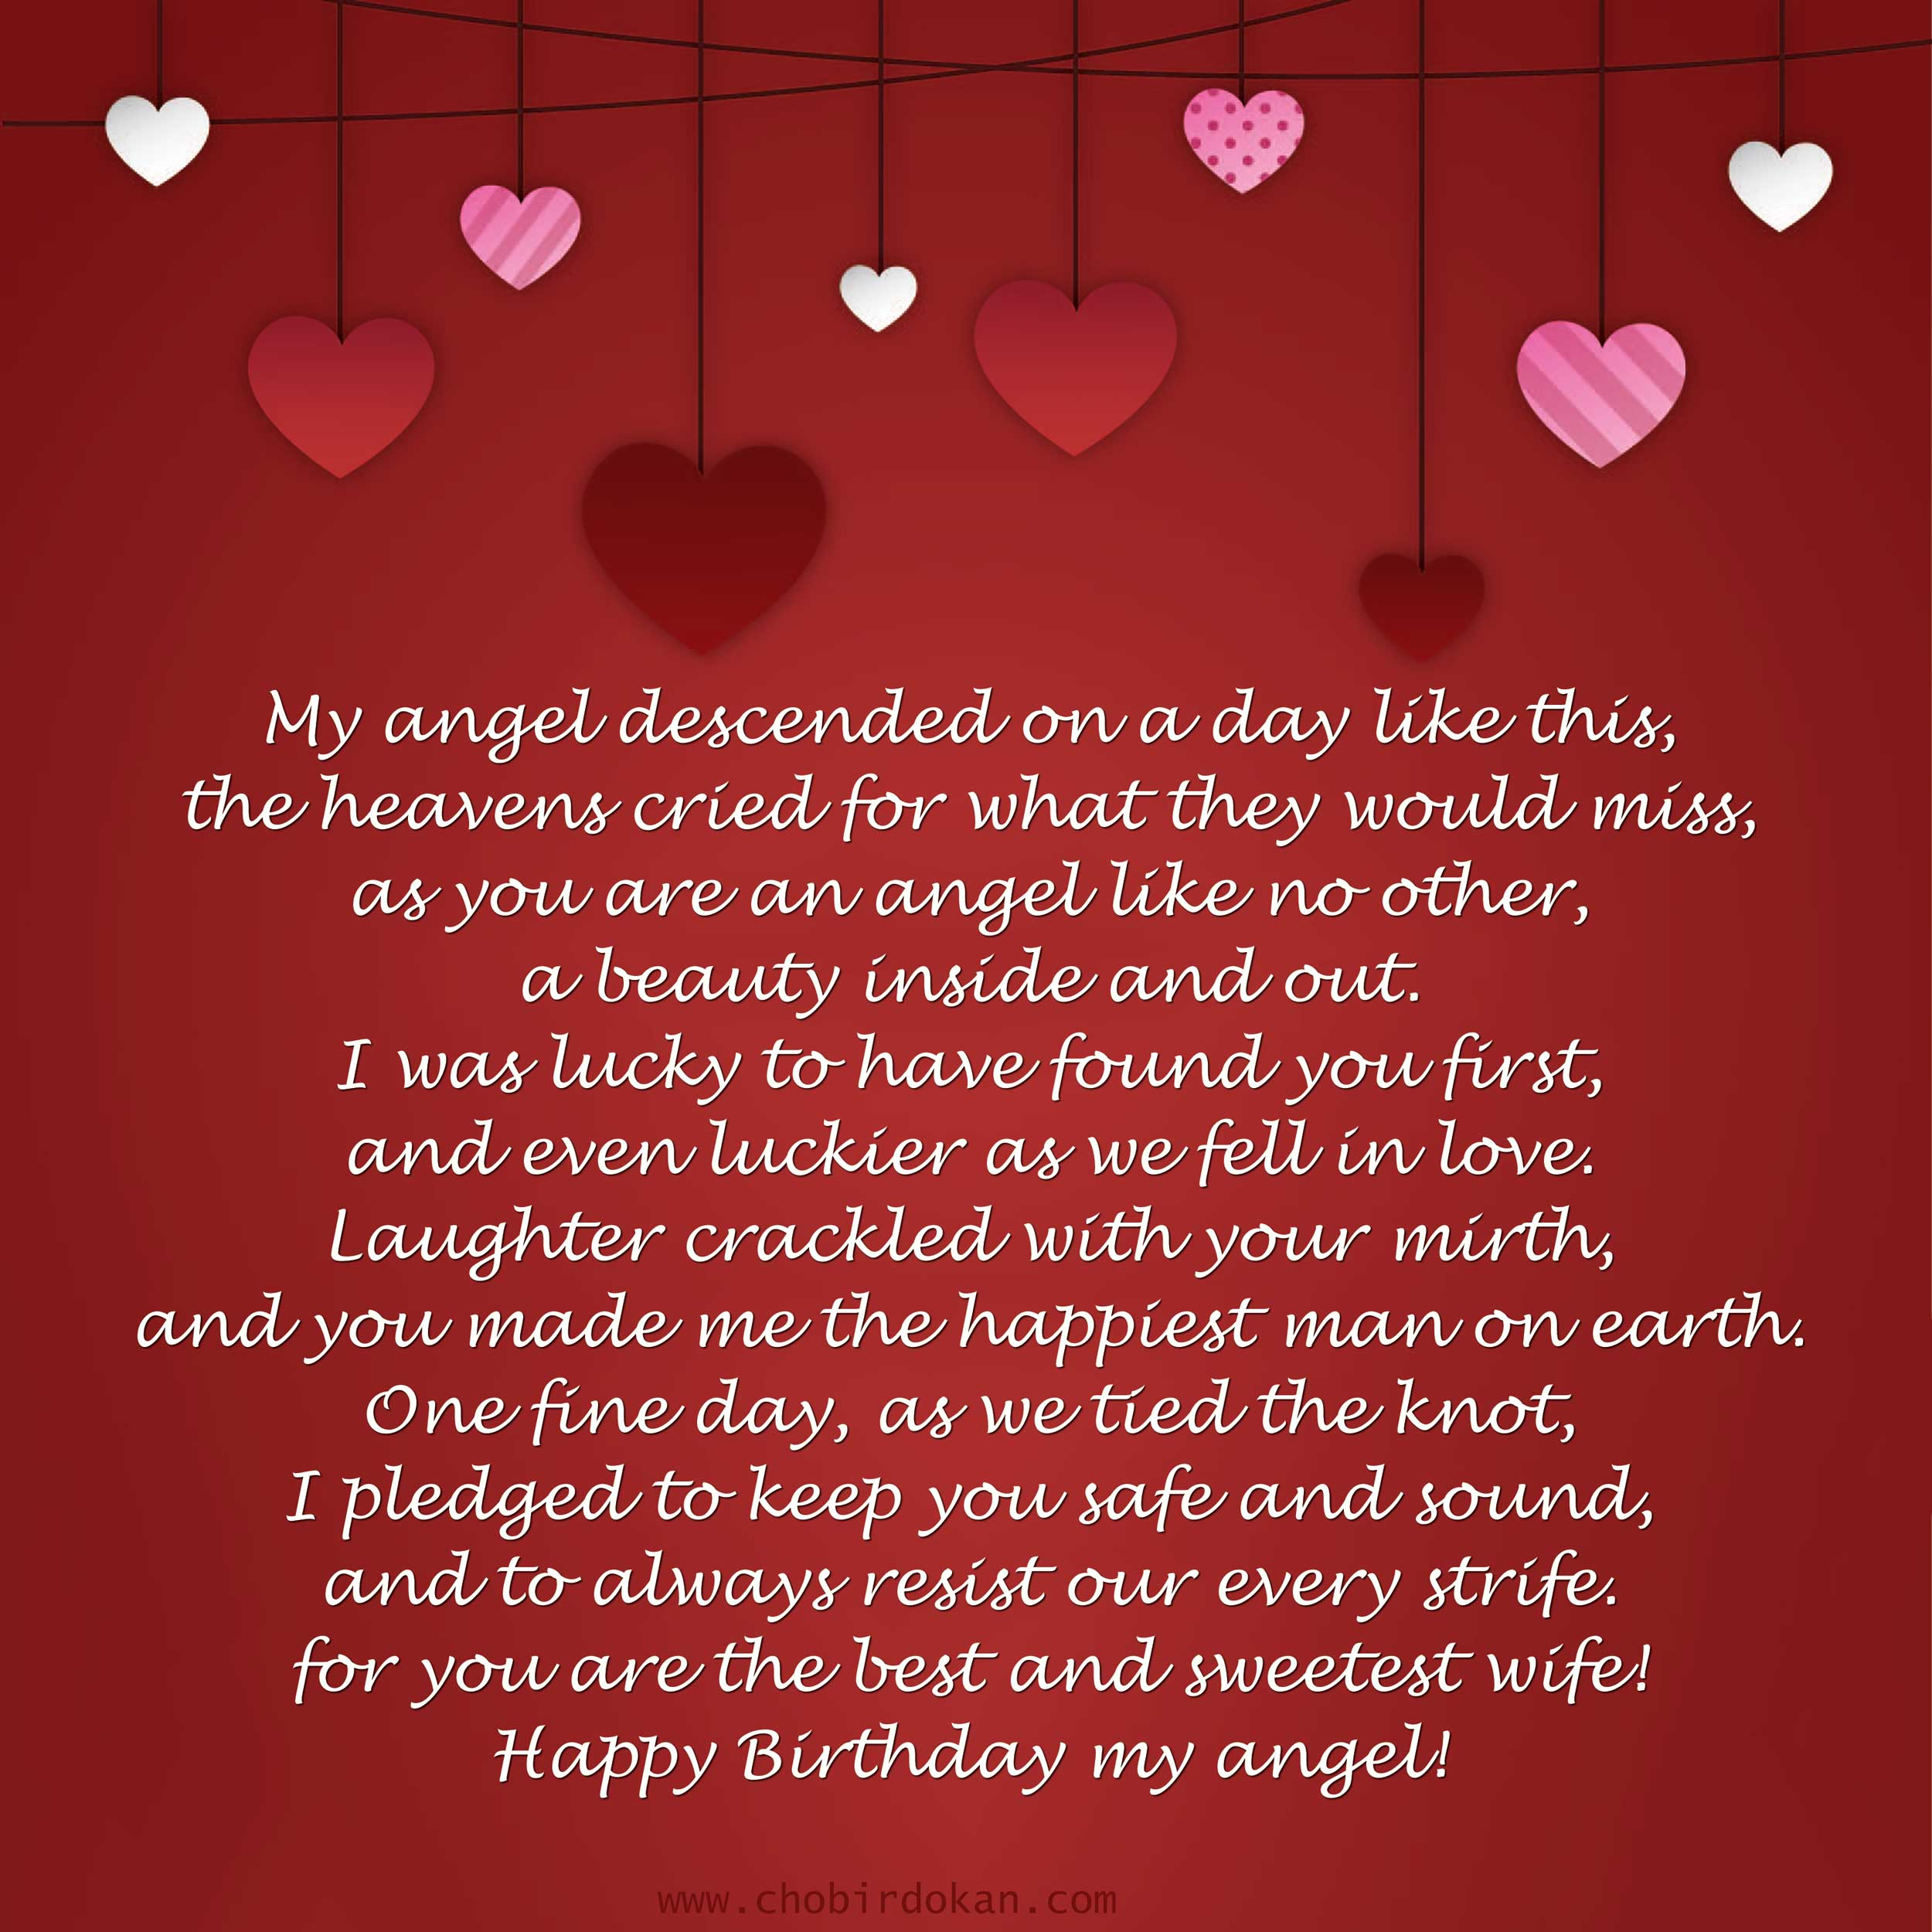 Romantic Happy Birthday Poems For Her For Girlfriend Or